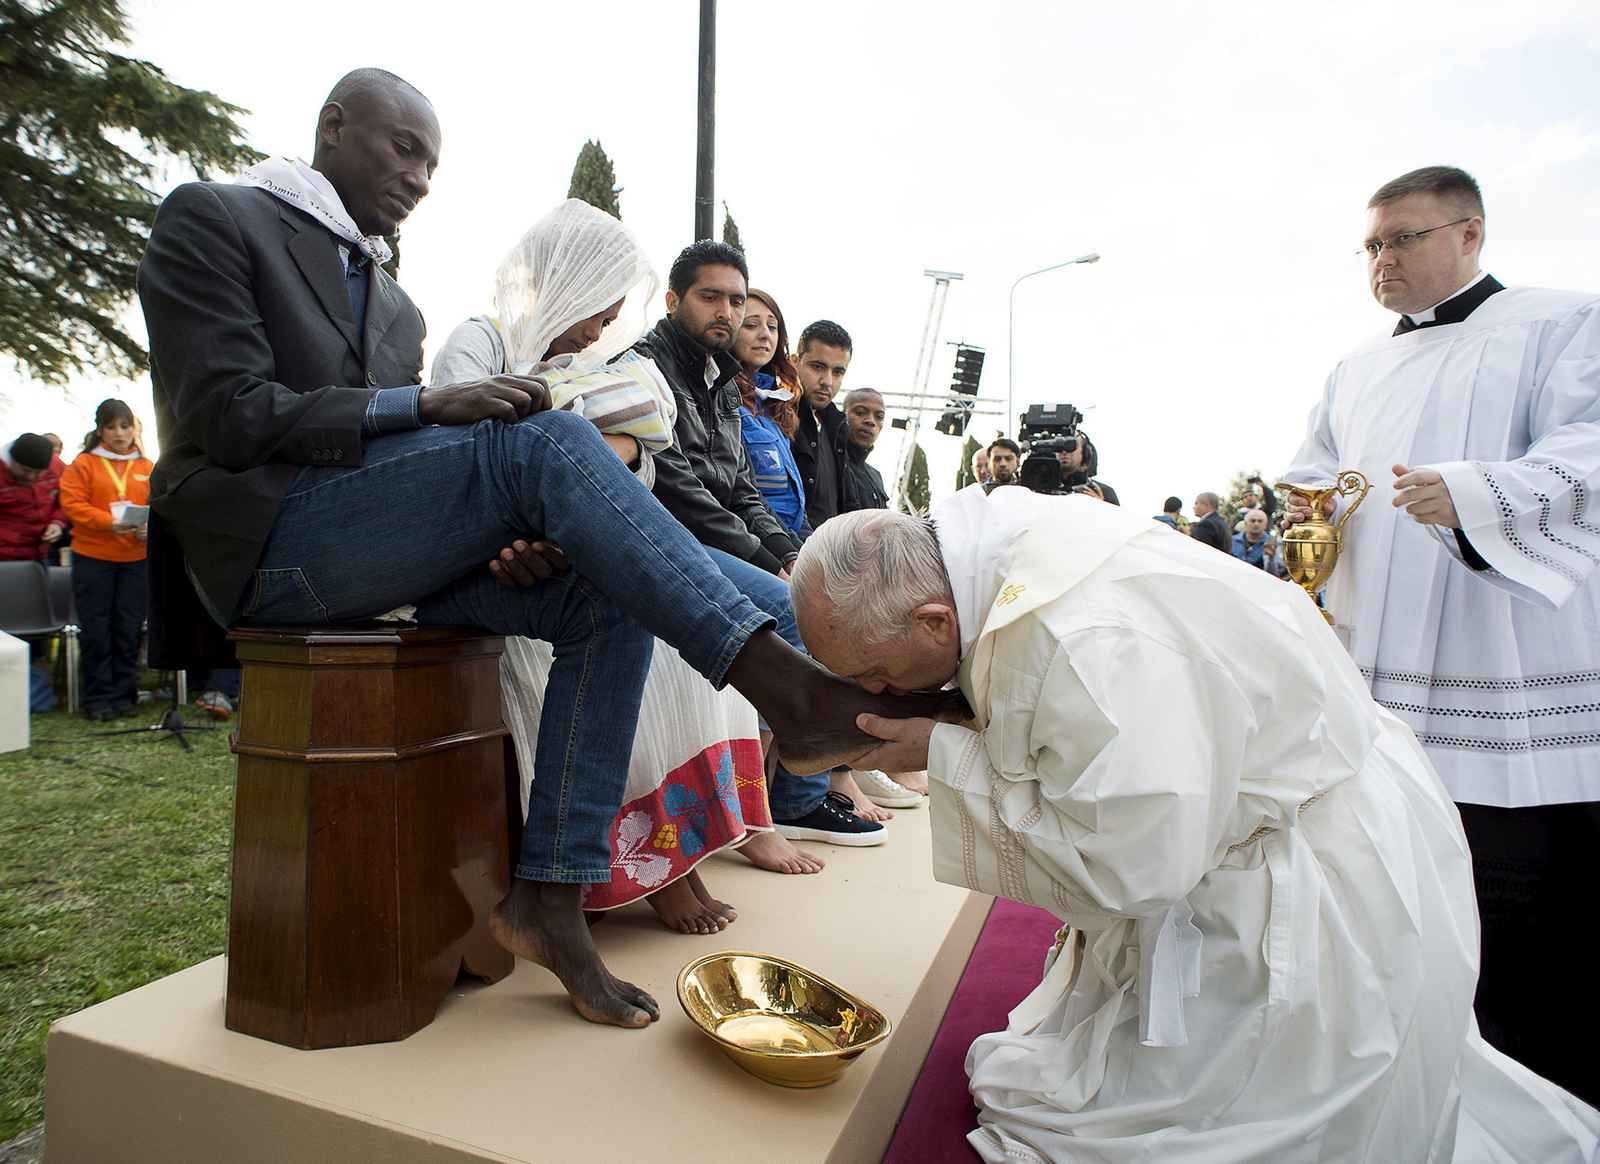 Pope Francis kisses the foot of a refugee during the foot-washing ritual at the Castelnuovo di Porto refugees center near Rome, Italy